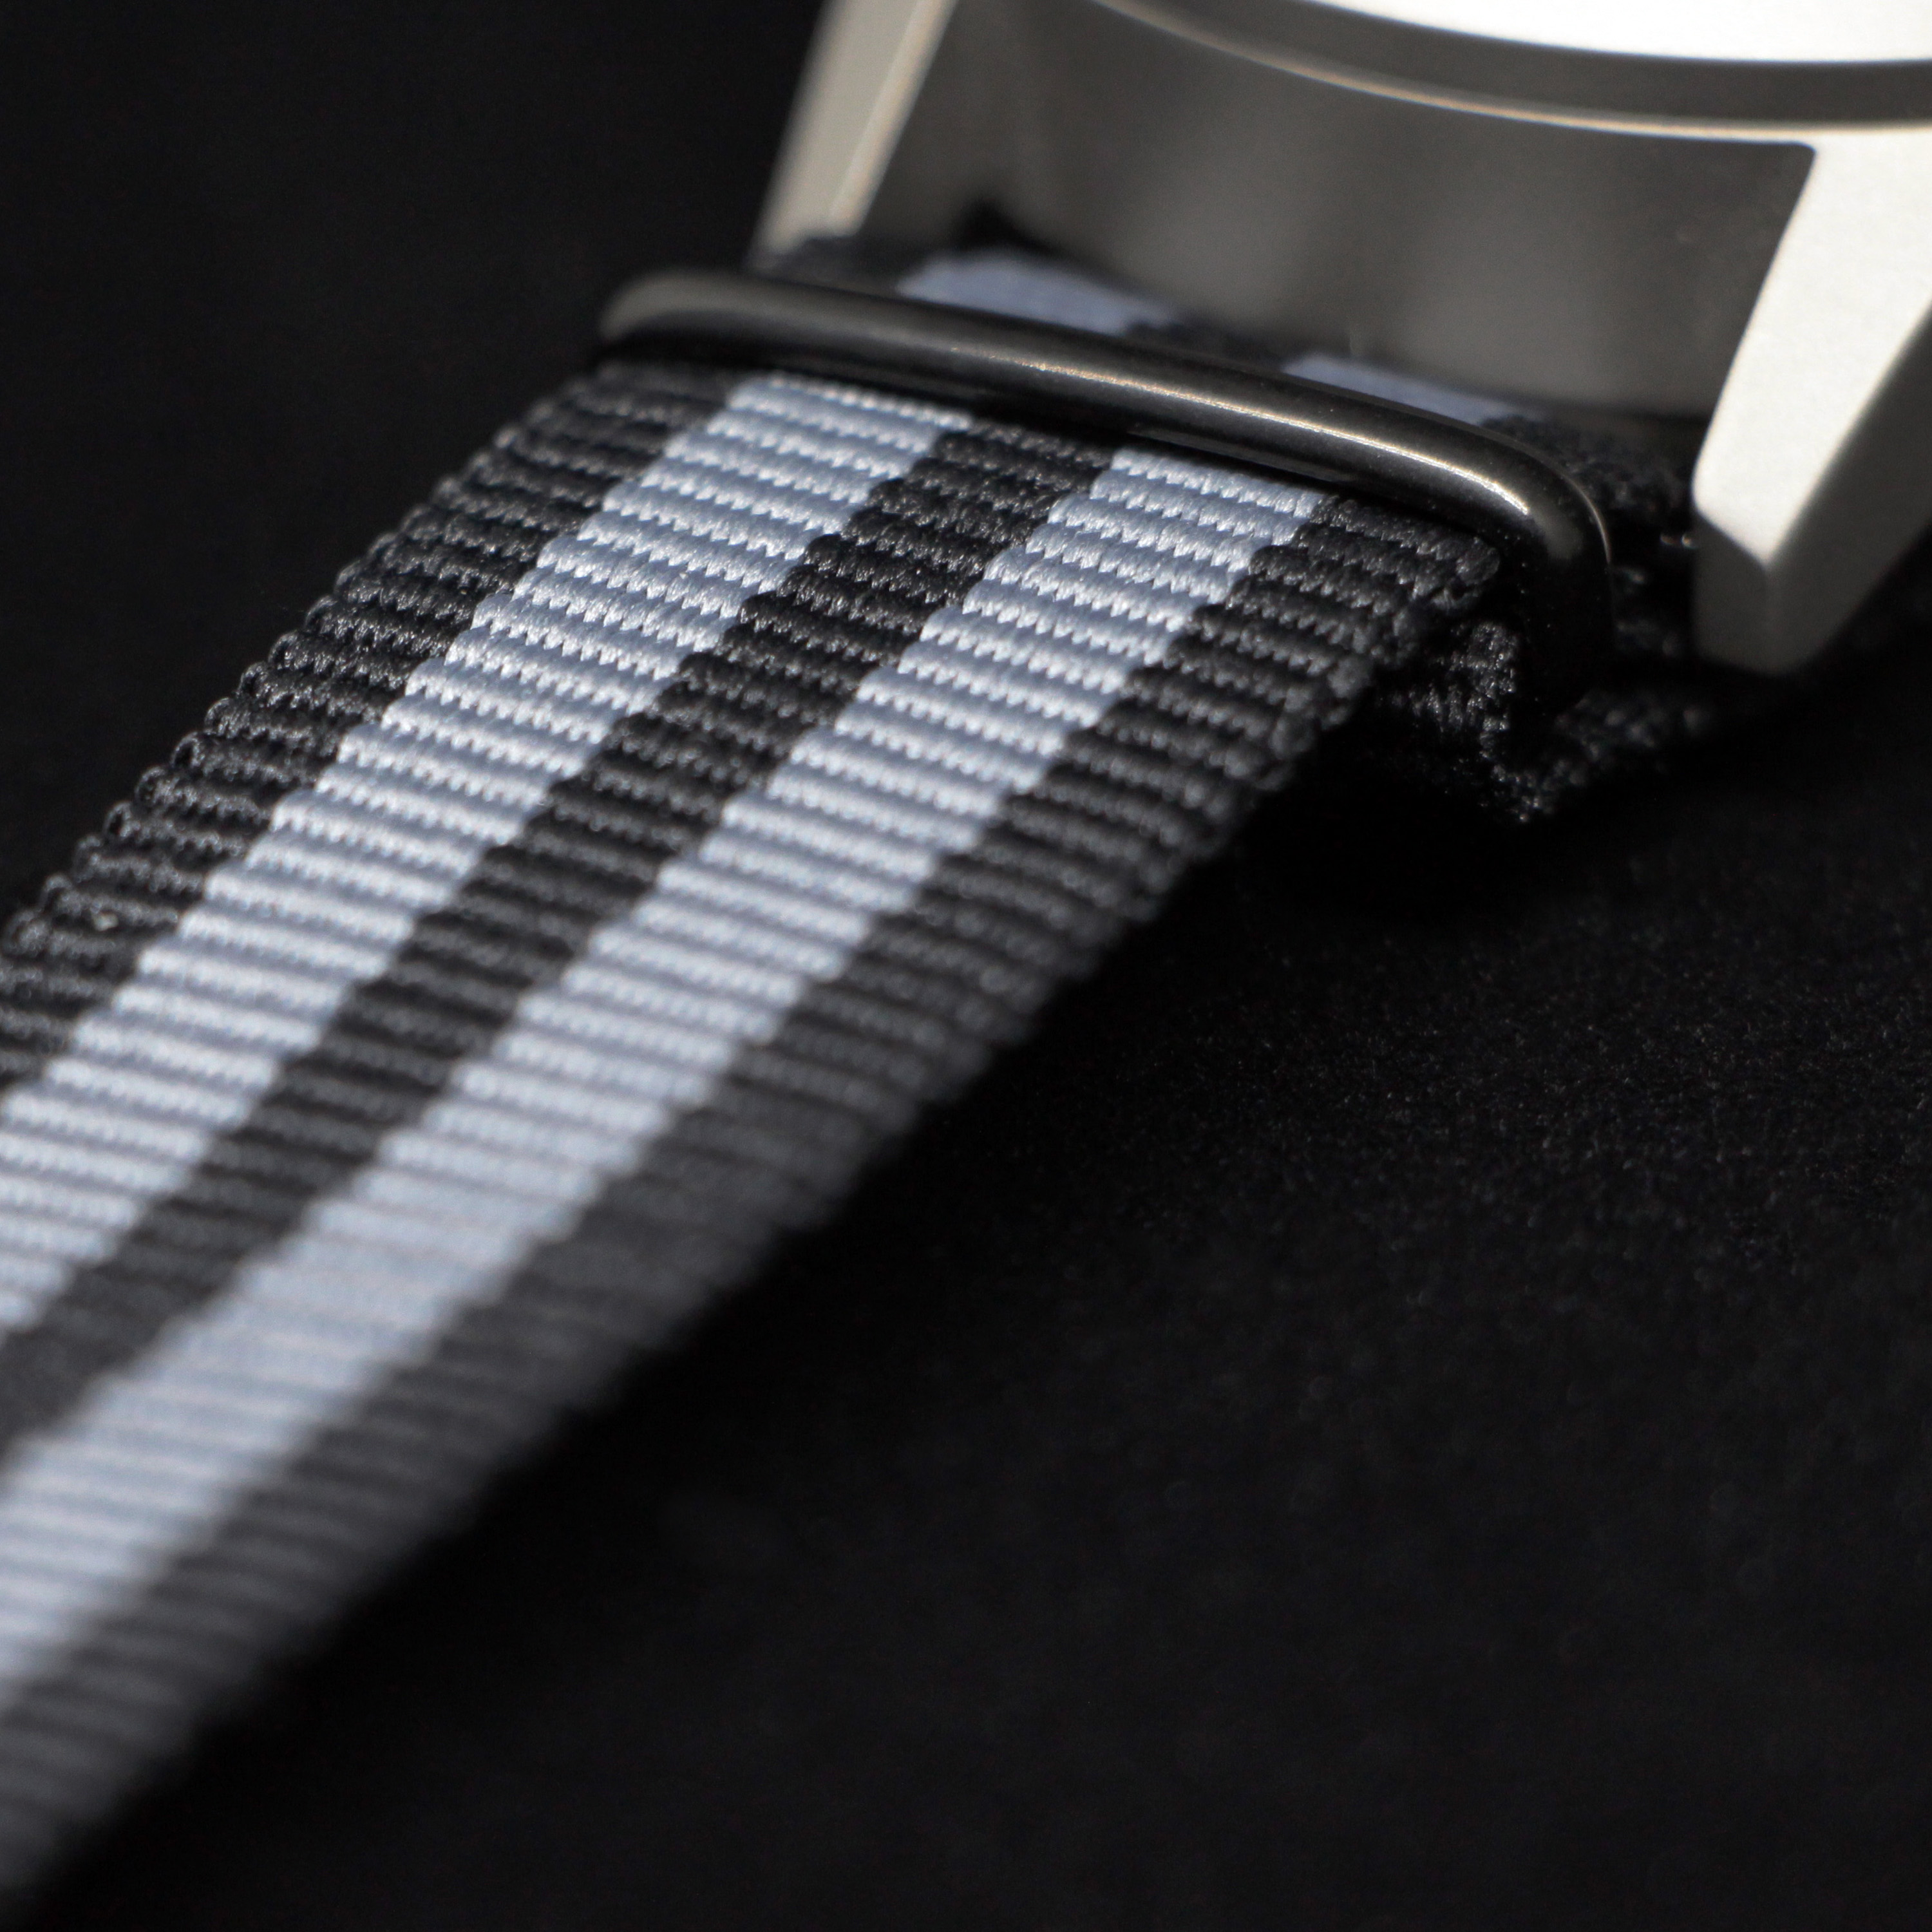 NATO strap wristband (one of the two wristbands included with the Type 77.MOVE)